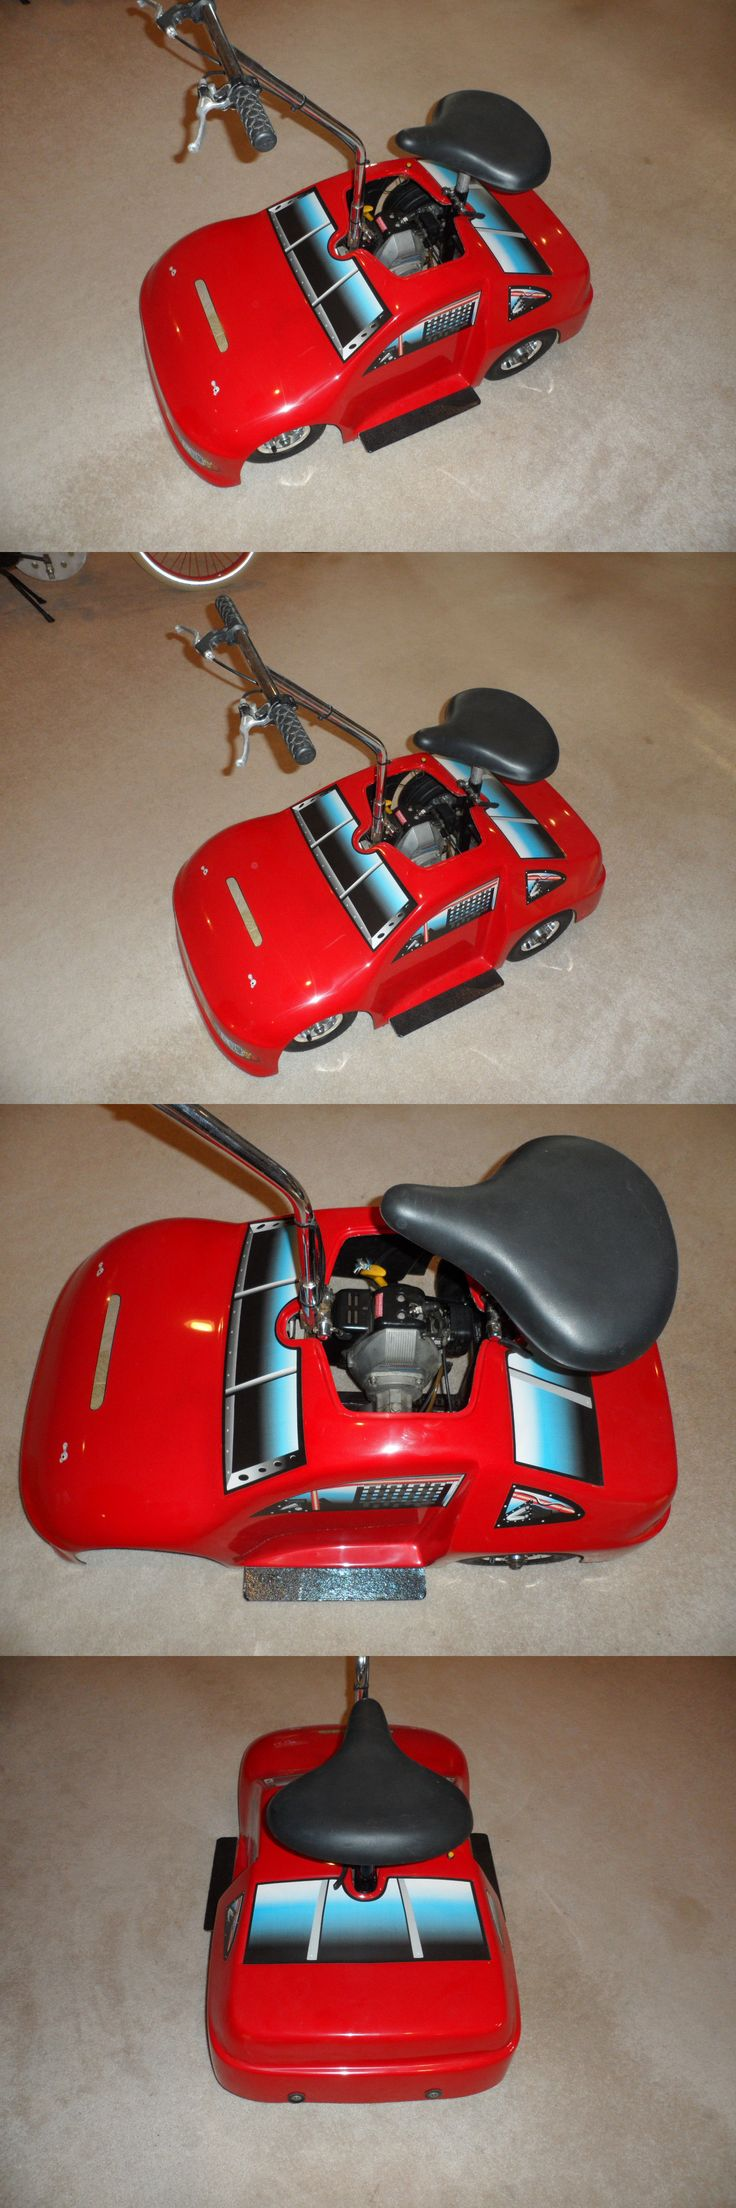 Complete Go-Karts and Frames 64656: Clown Parade Car Custom Wow This Is A One Of A Kind -> BUY IT NOW ONLY: $1250 on eBay!